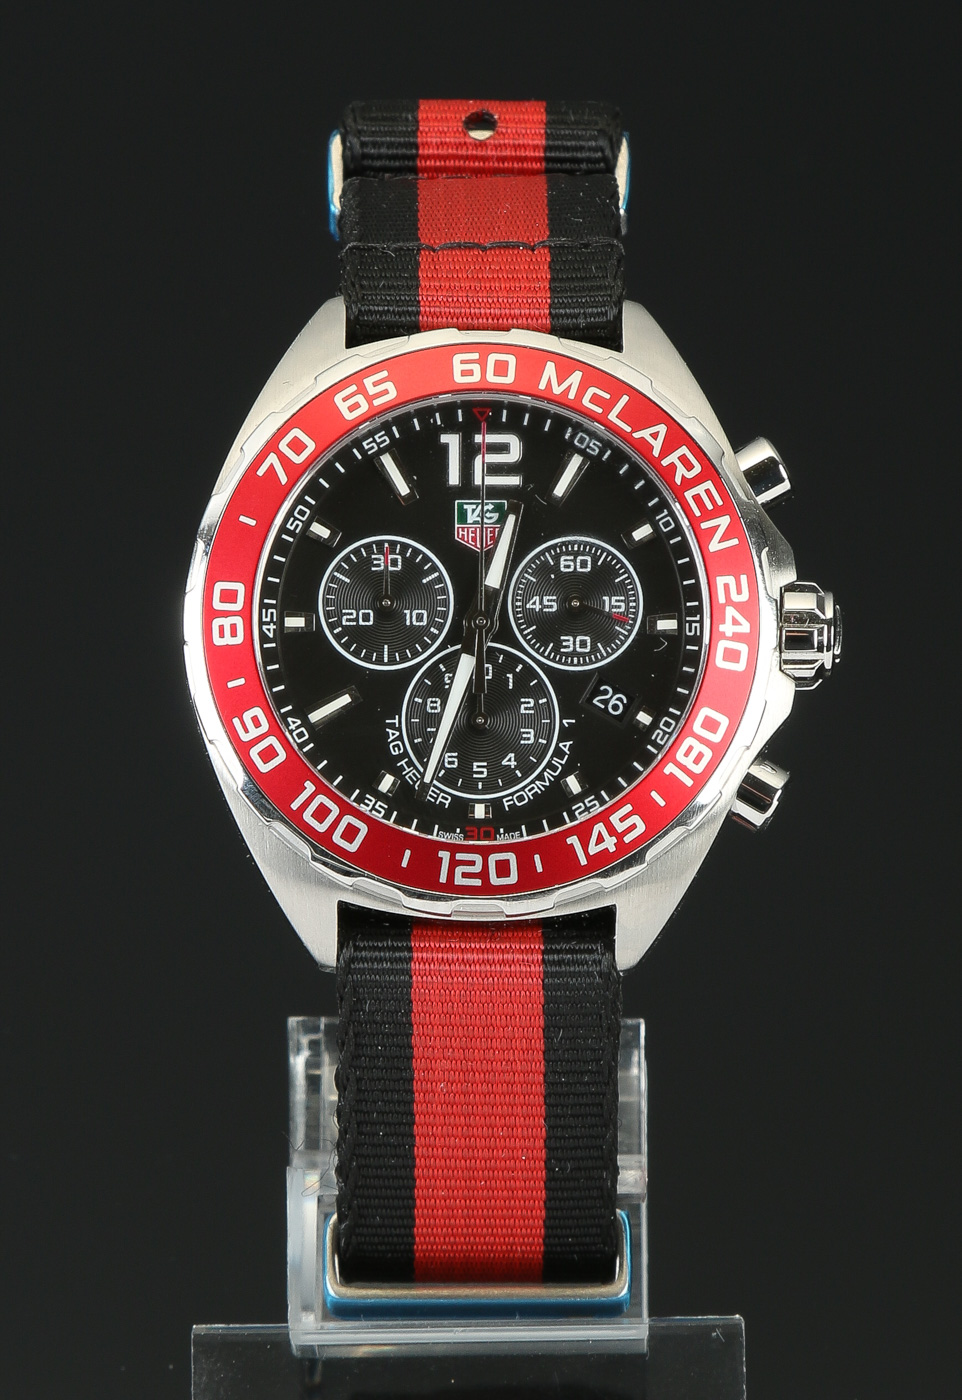 TAG Heuer Formel 1 McLaren men's watch